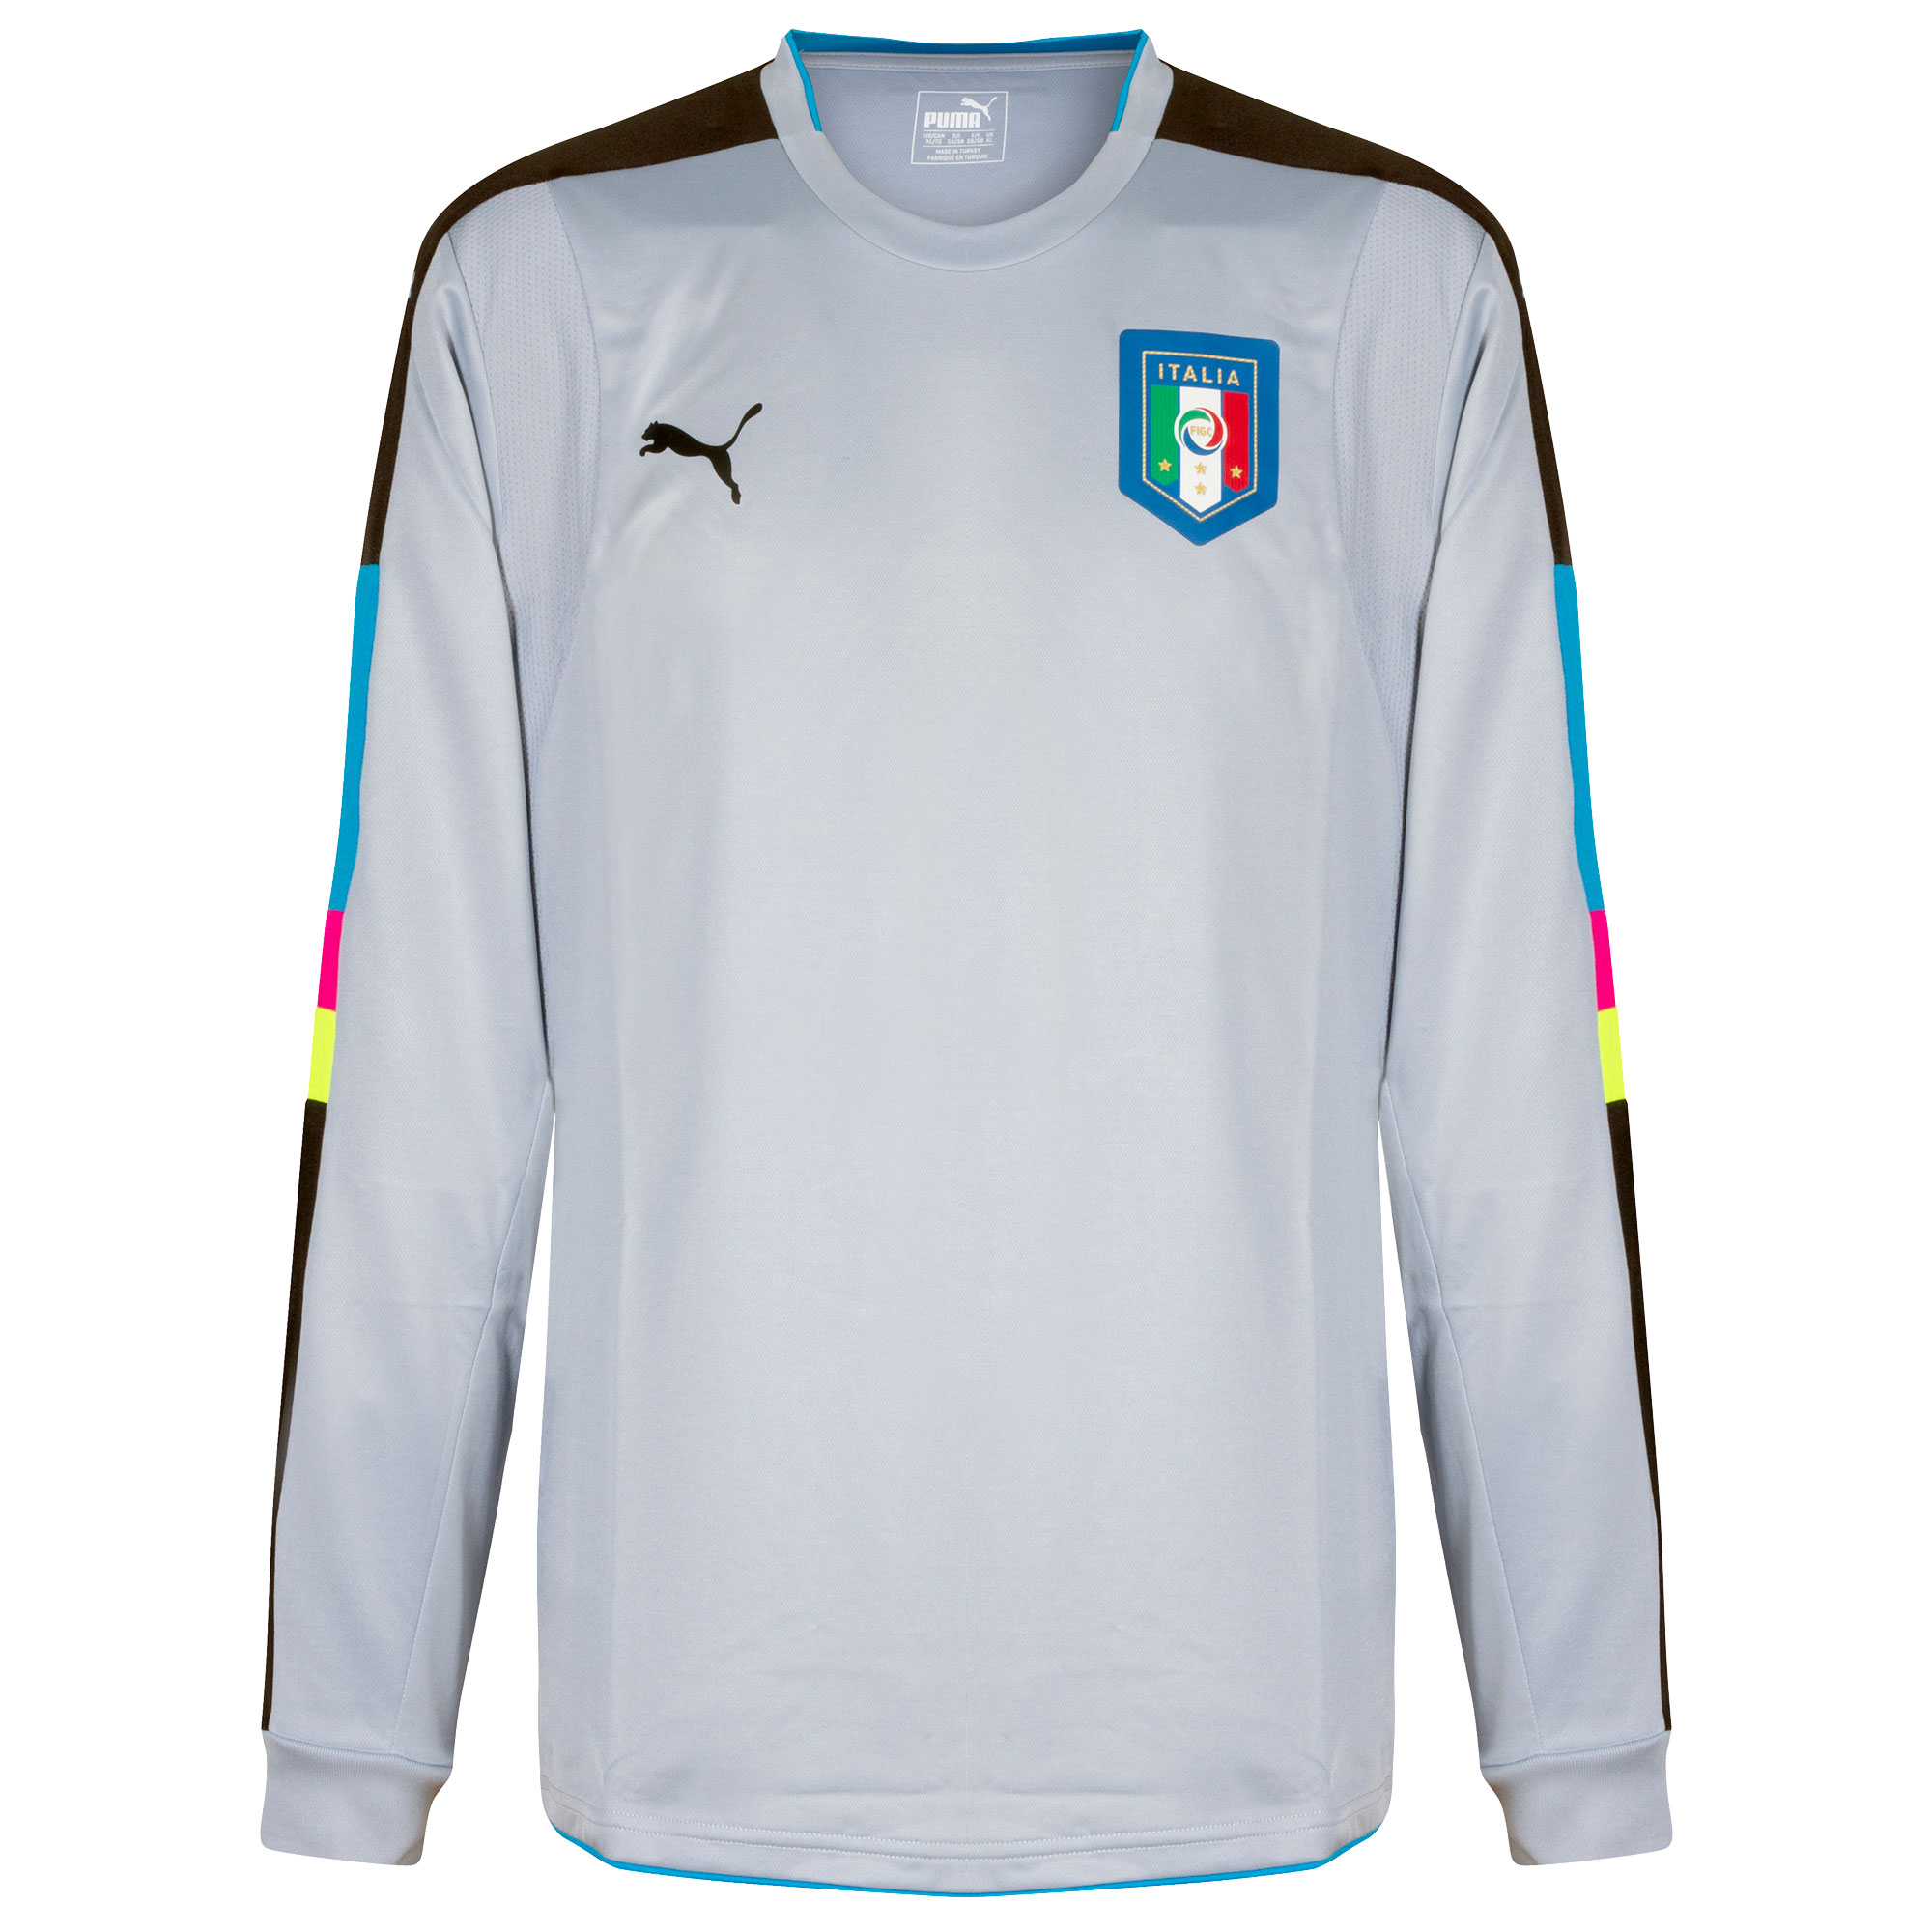 Puma Italy L/S Authentic Player Issue GK Shirt - Grey 2016-2017